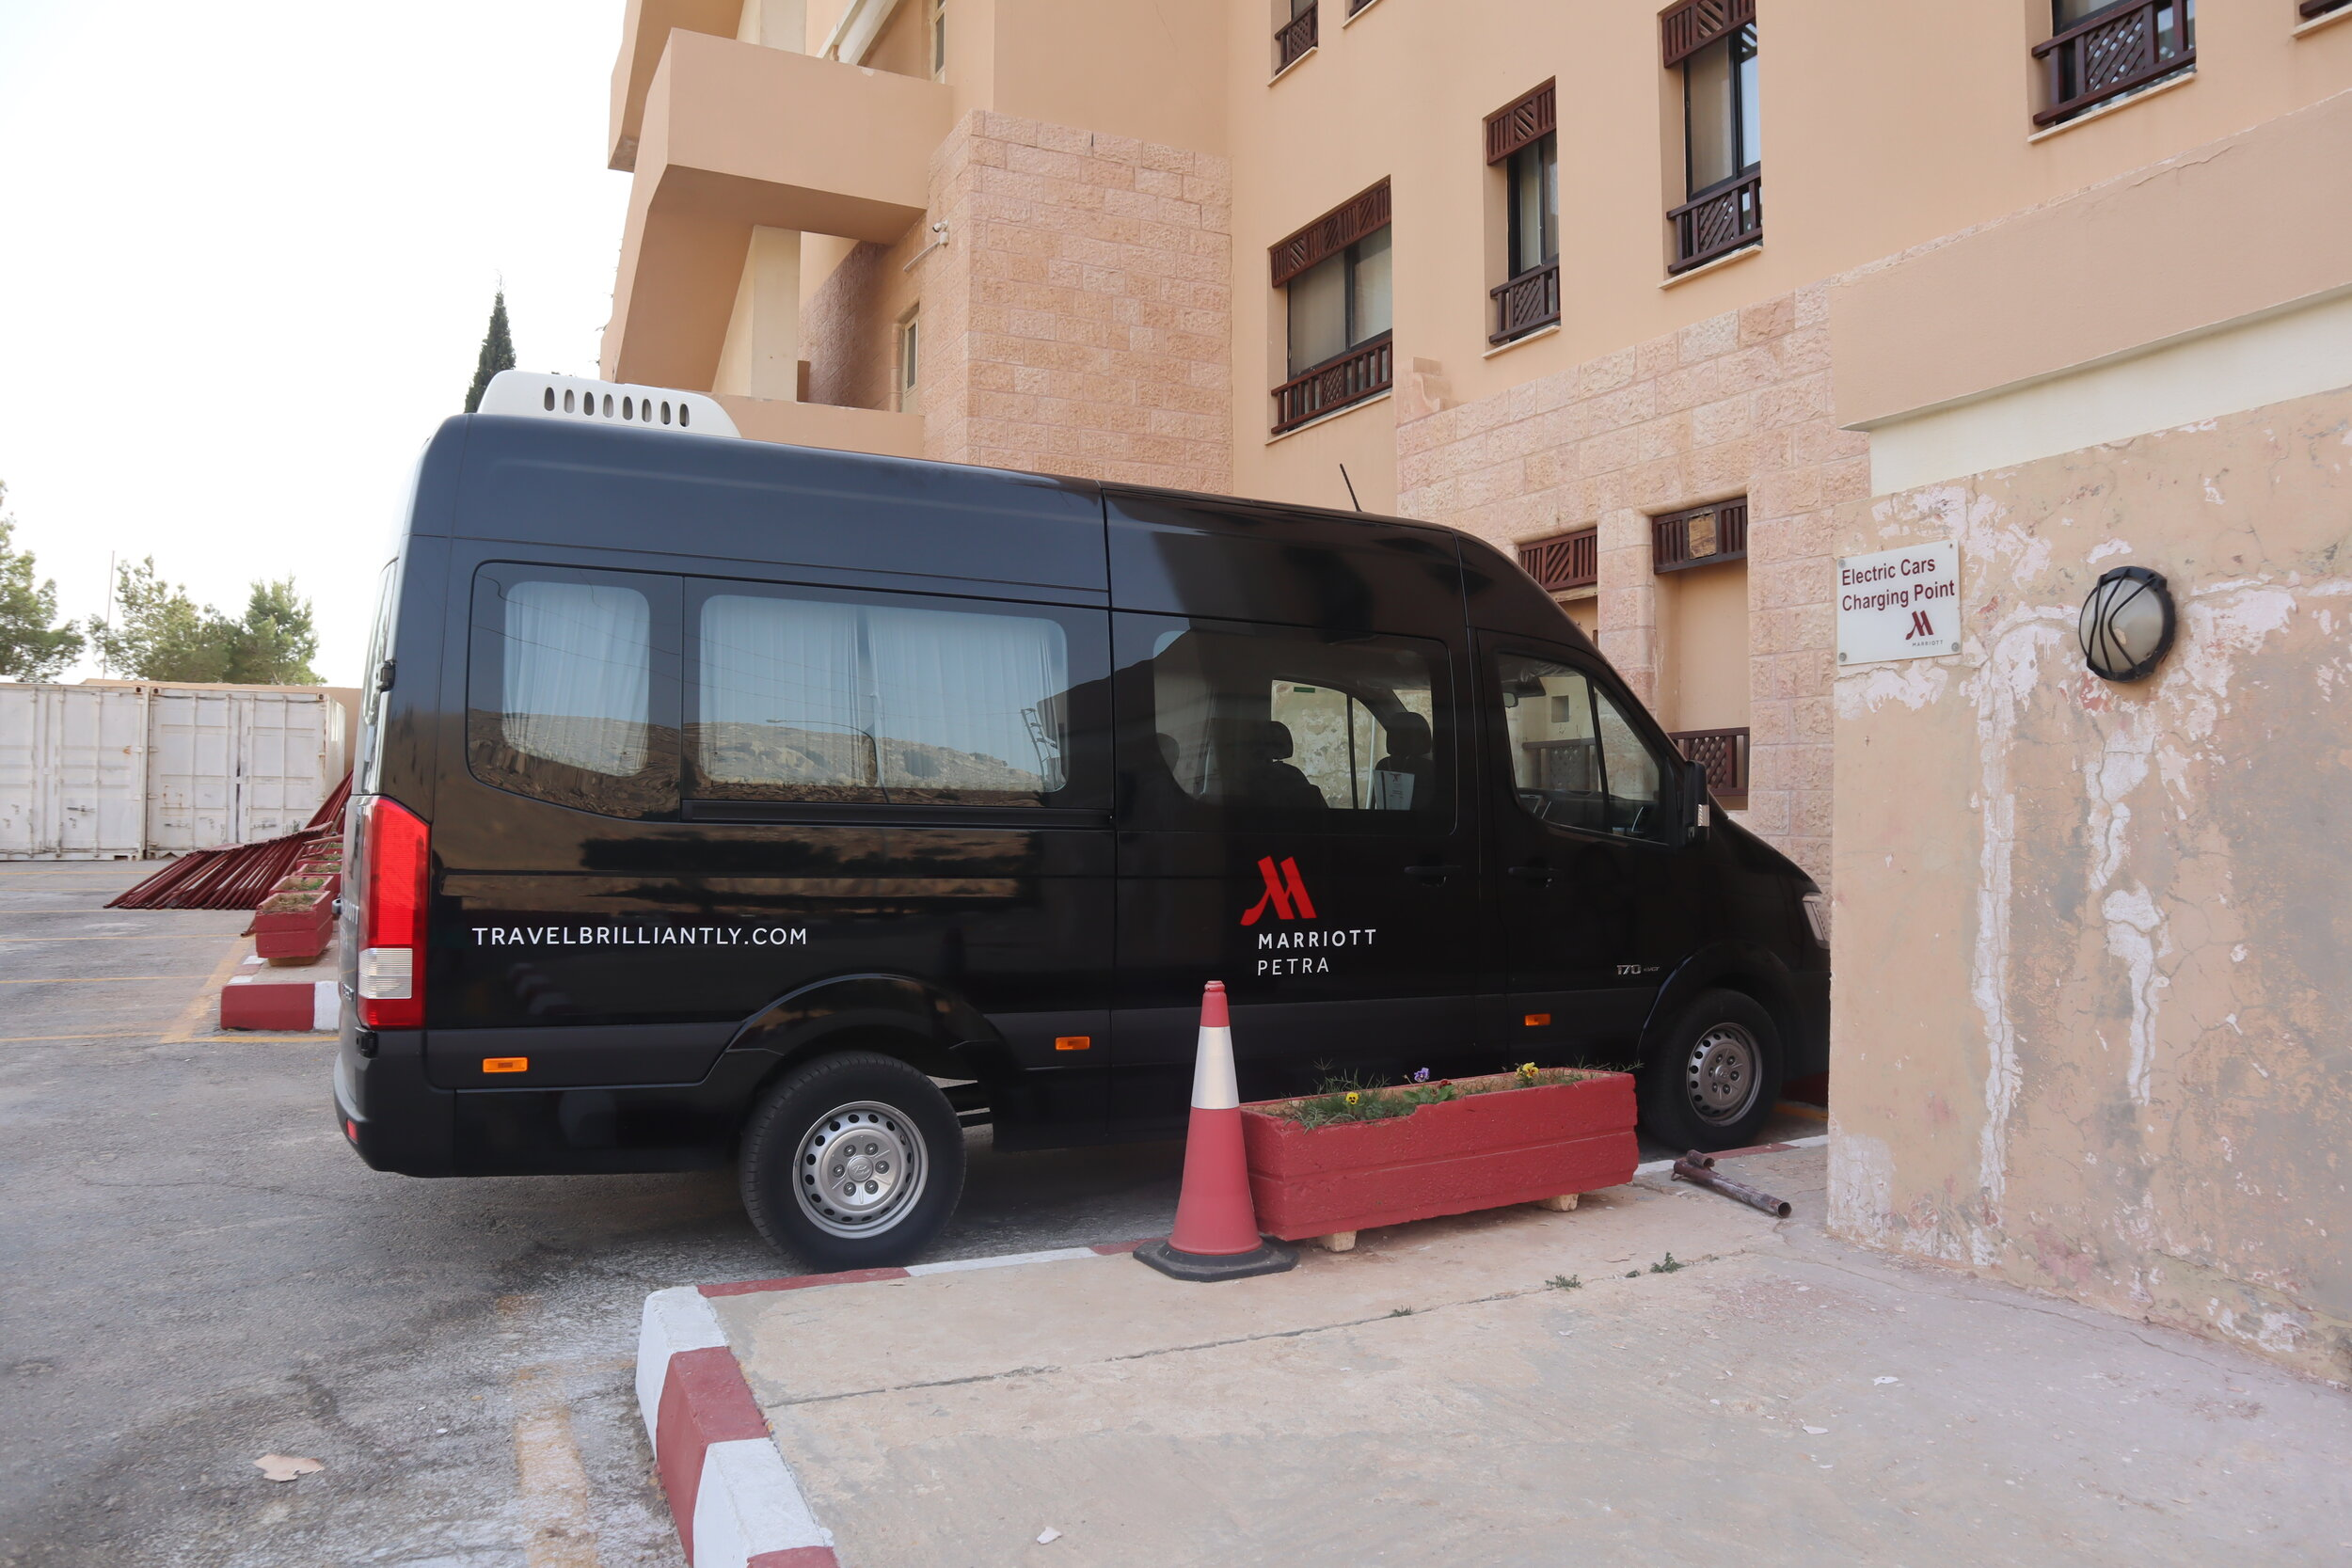 Marriott Petra – Shuttle bus